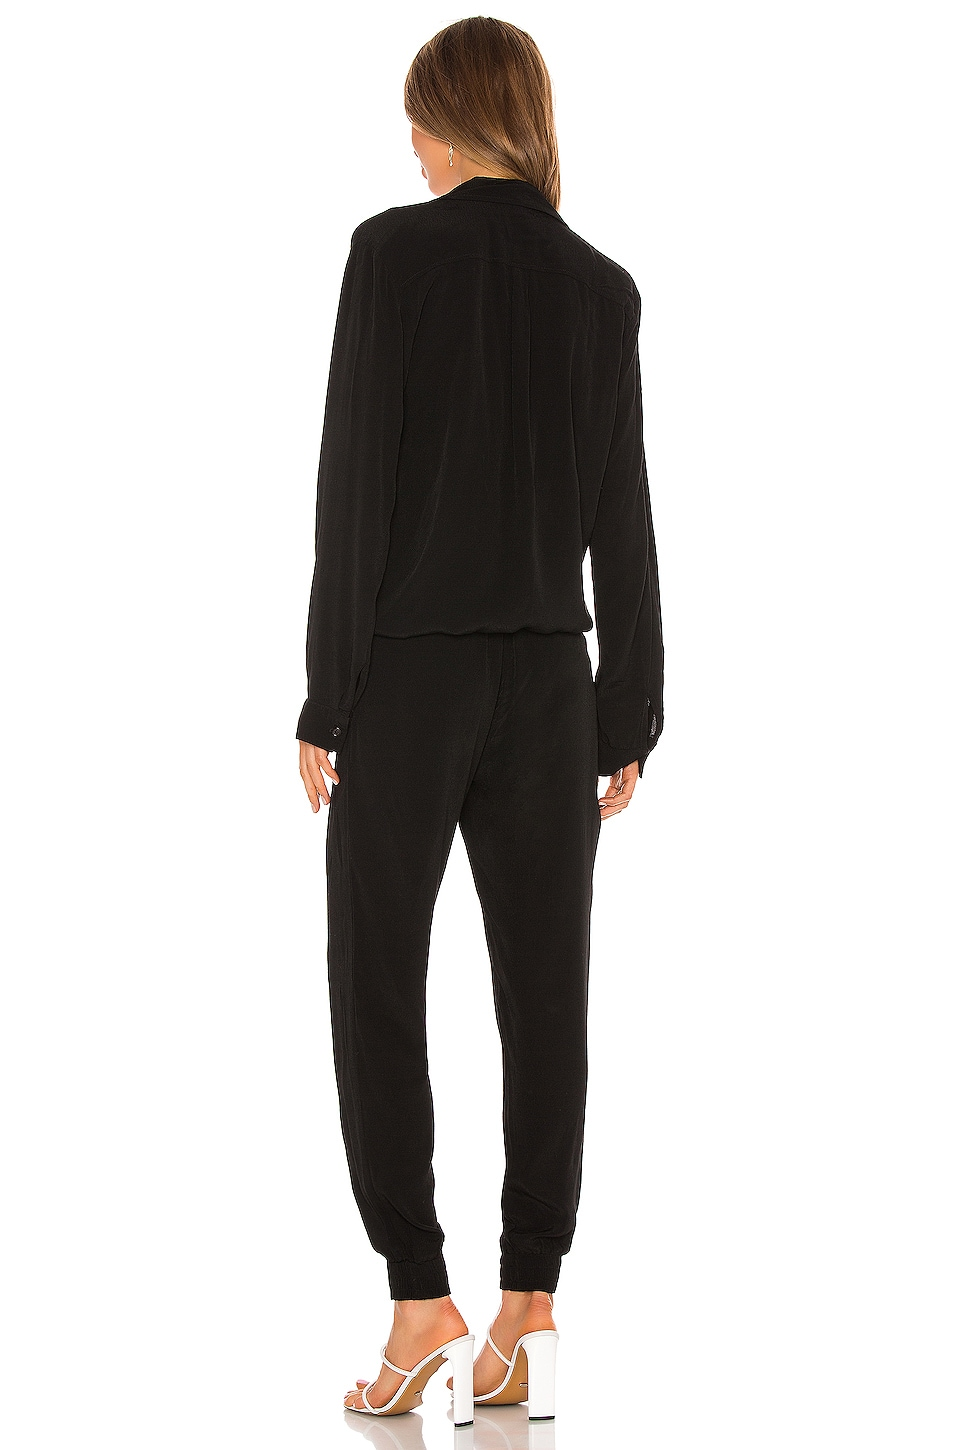 Crepe Long Sleeve Jumpsuit, view 3, click to view large image.